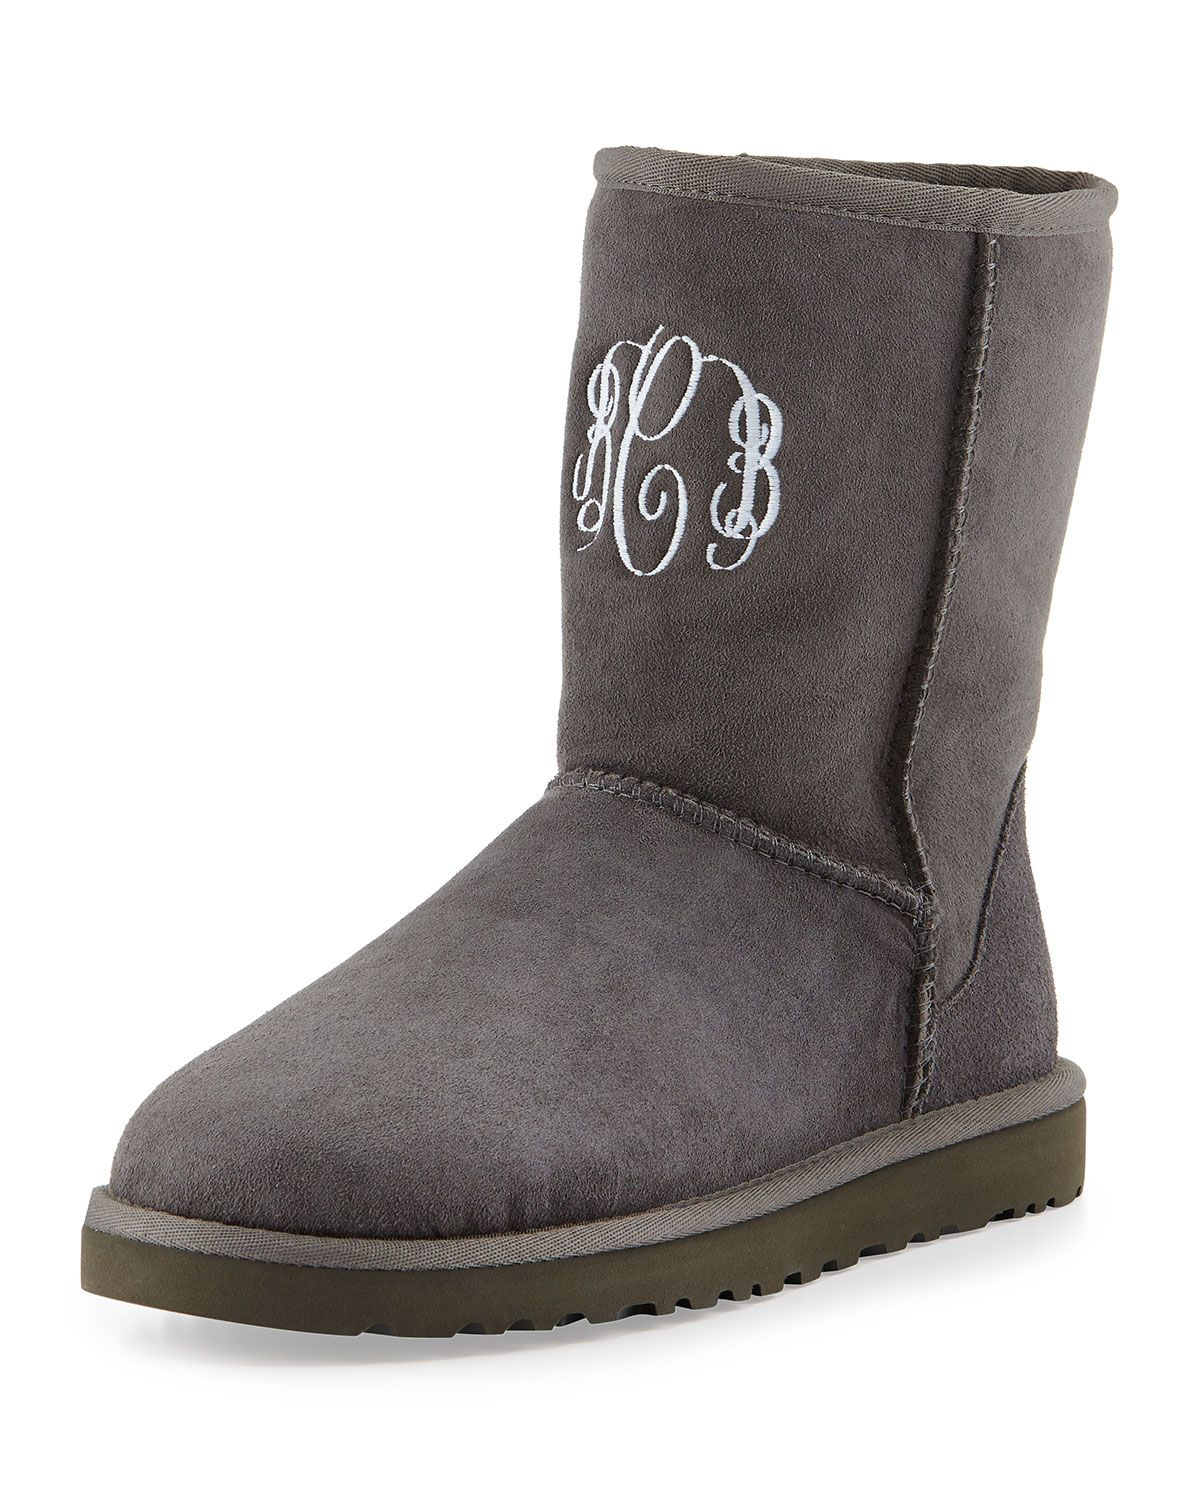 f64ee7830fc Personalized UGGS - these would make a GREAT gift! | Monogram in ...